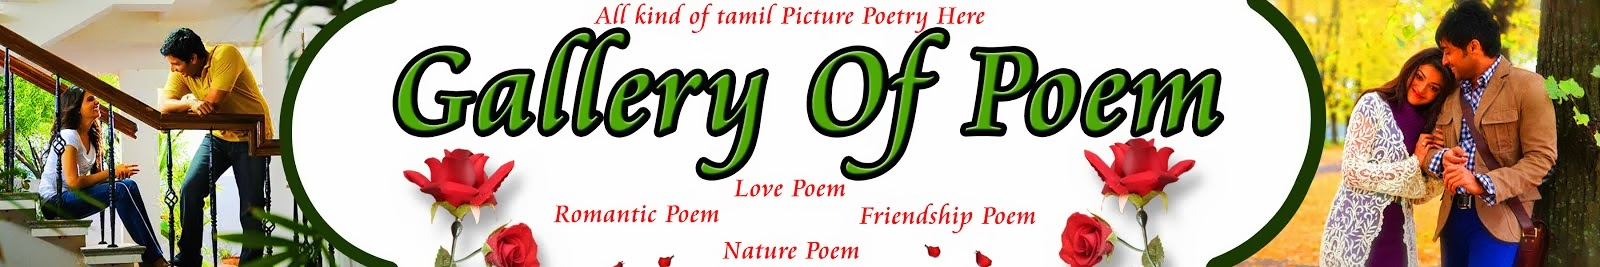 Gallery Of Poem